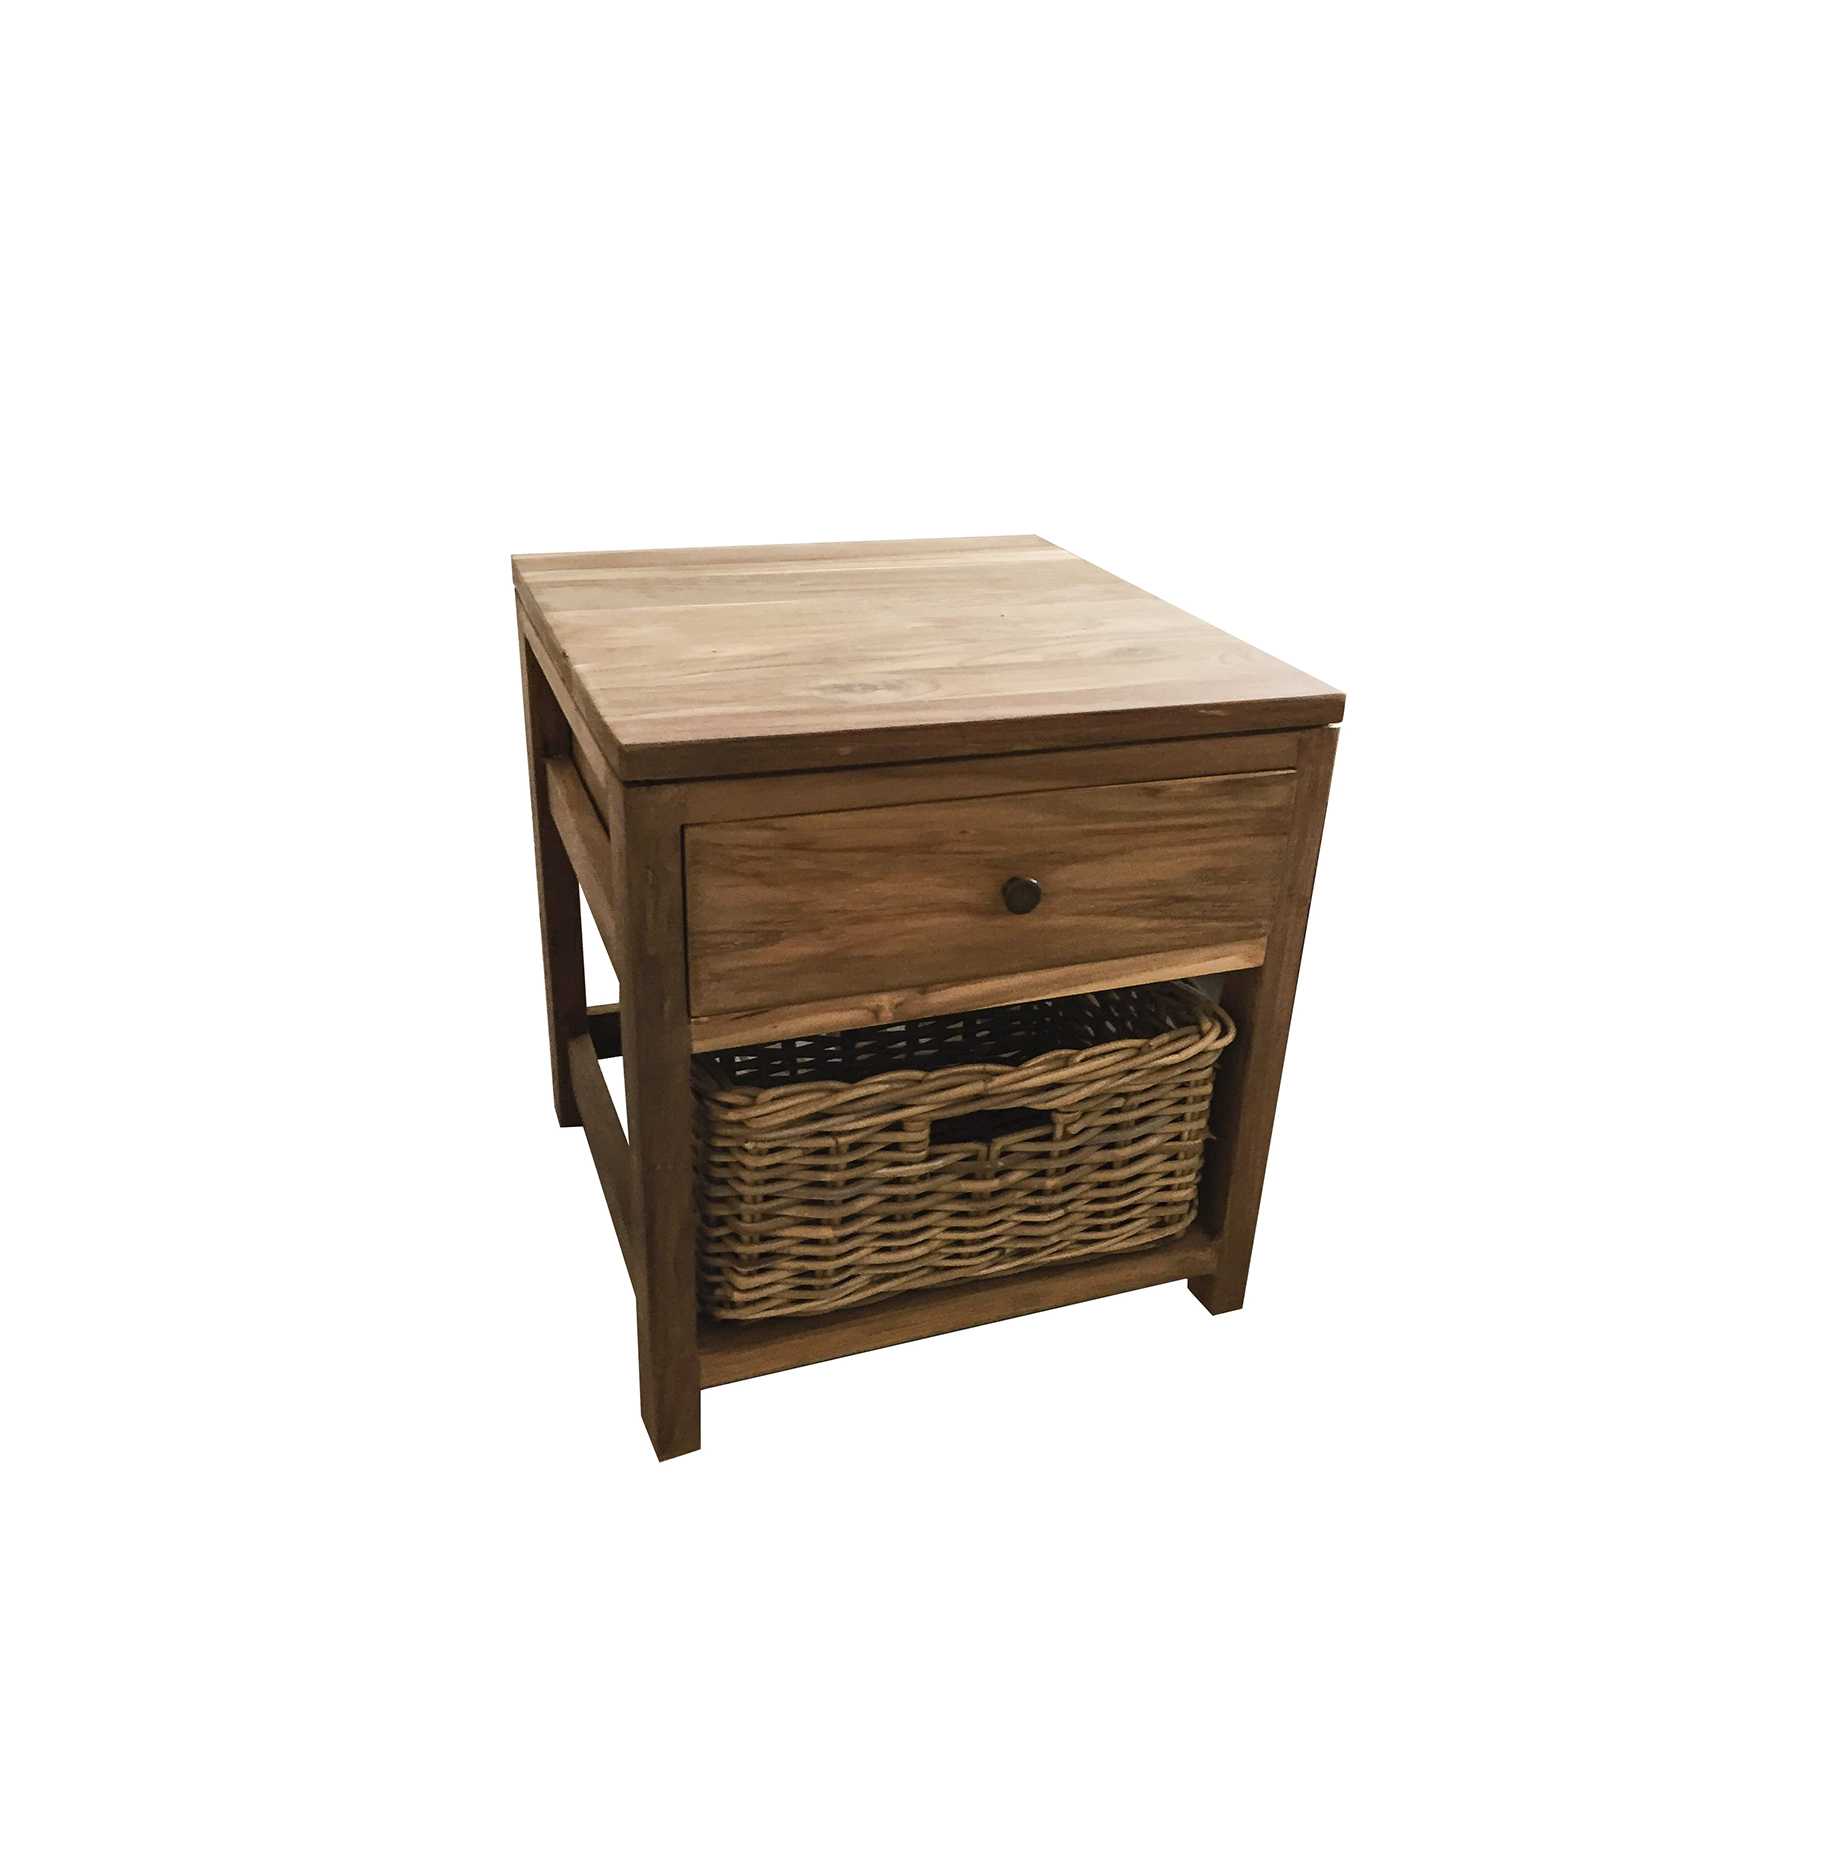 Bayan Rustic Bedside Table